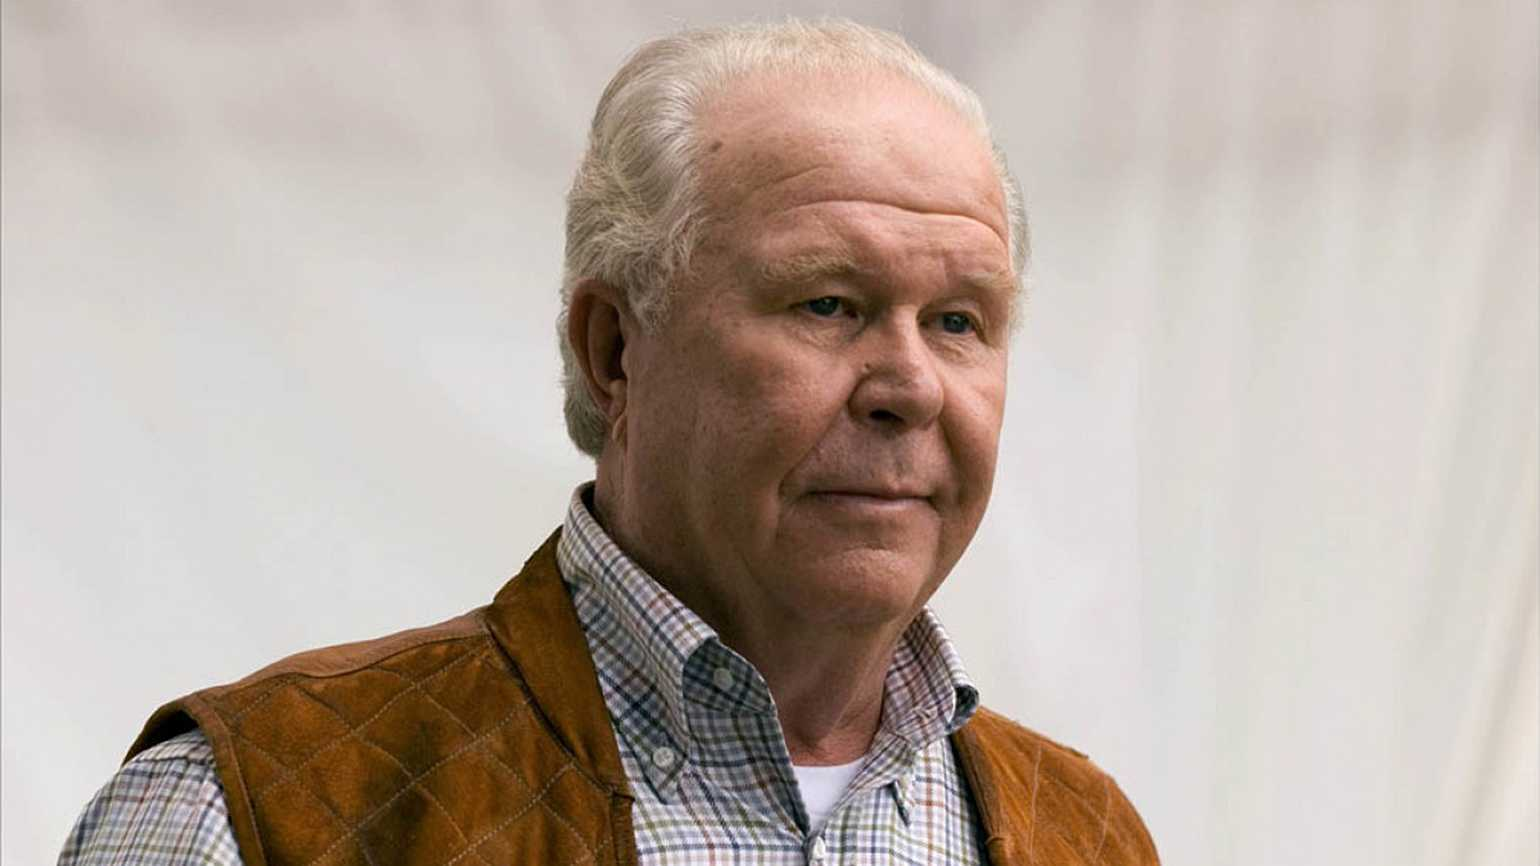 Acclaimed character actor Ned Beatty